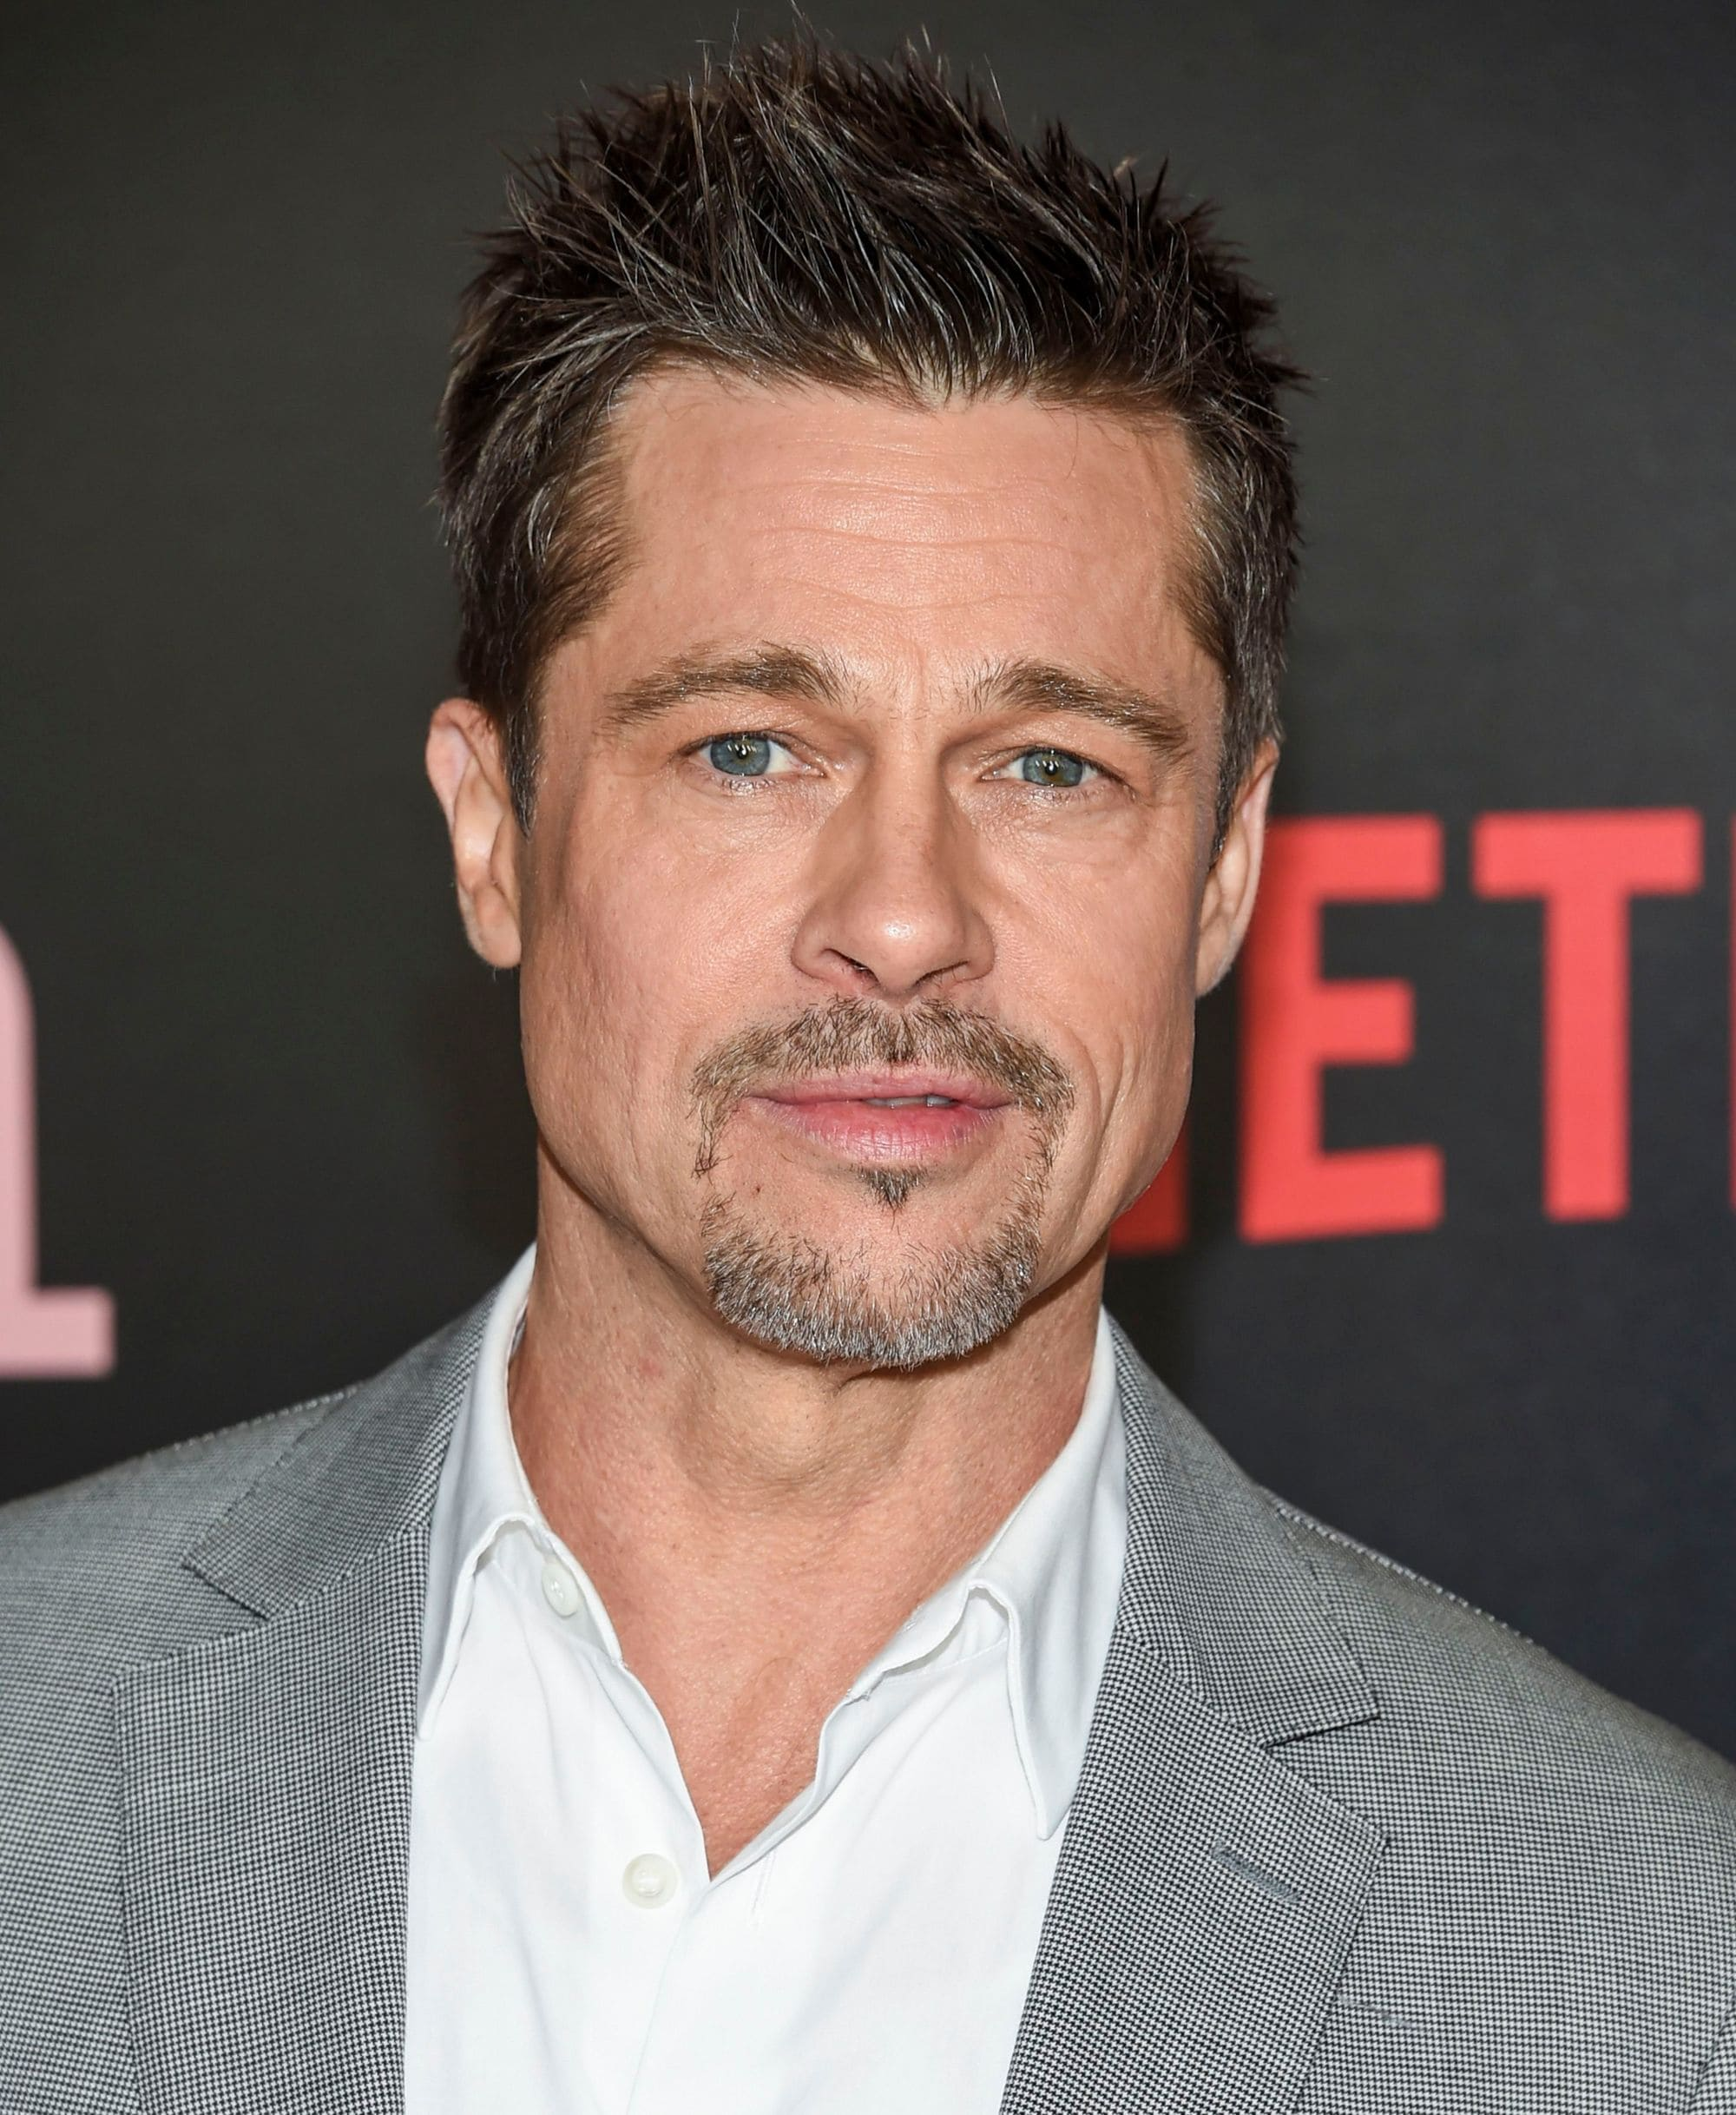 Hairstyles for men over 50: Brad Pitt with short spiky dark blonde hair and stubble beard wearing a grey and white suit at film premiere.